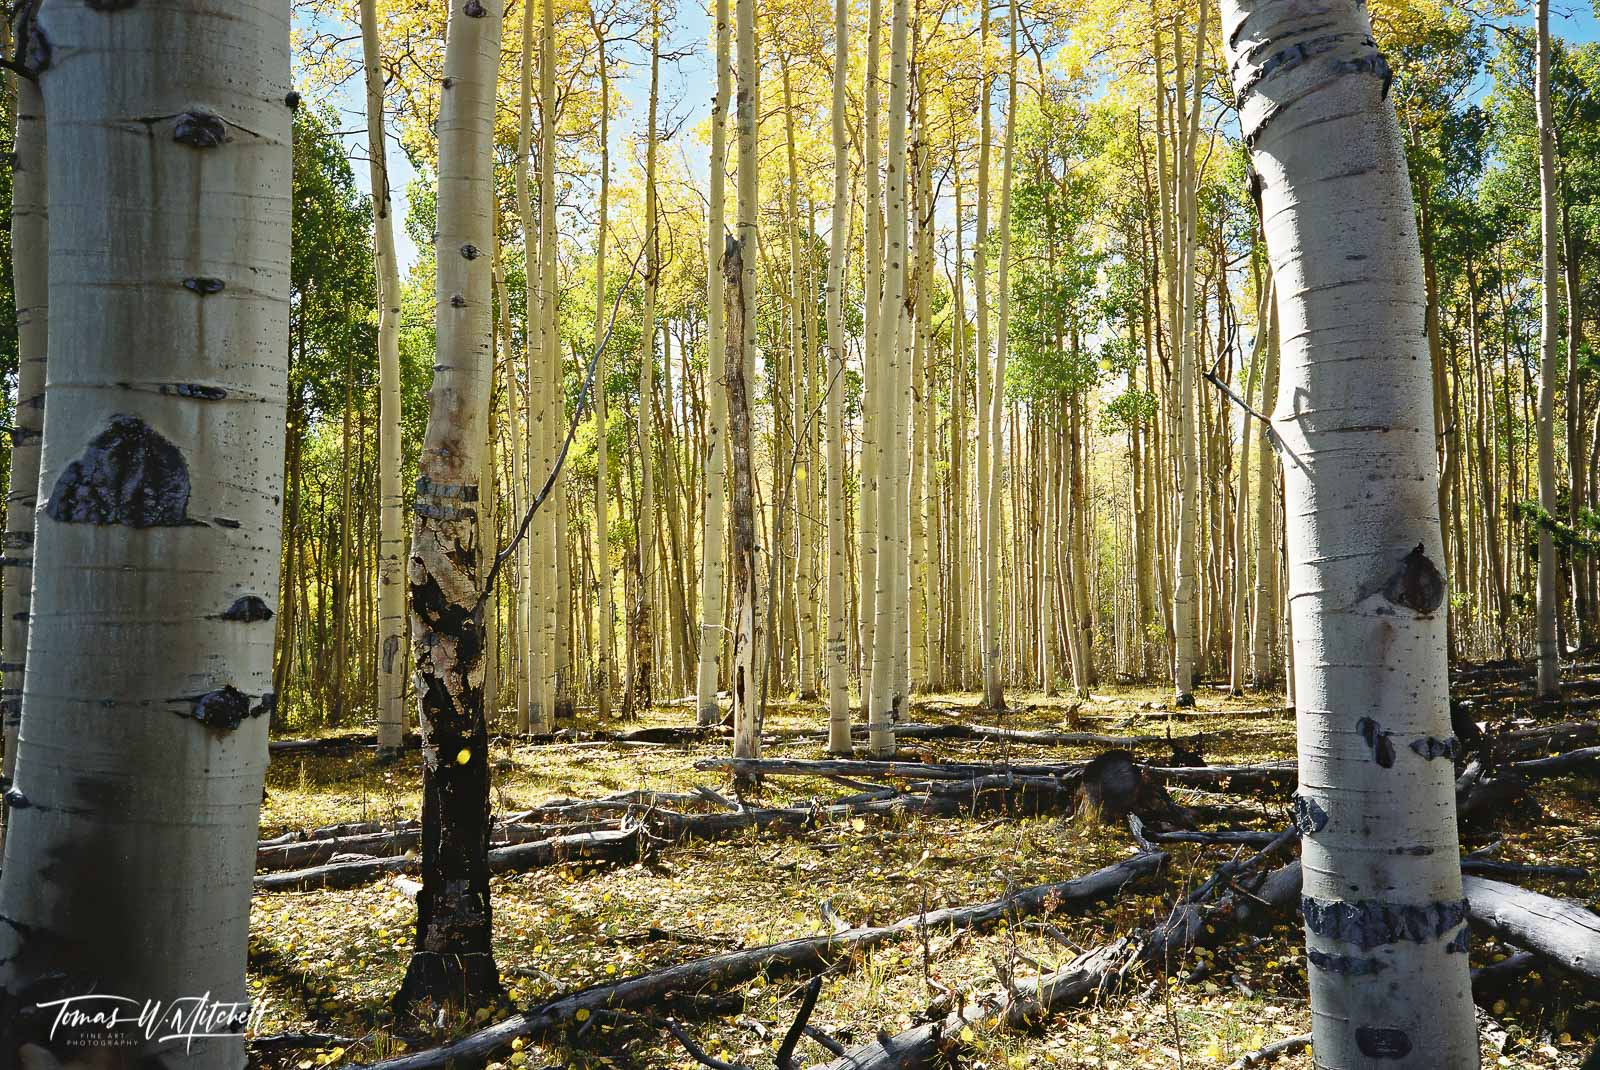 fine art, limited edition, prints, film, photograph, forest, golden, yellow, trees, aspens, leaves,  quaking aspen, falling, utah, wasatch cache nation forest, photo